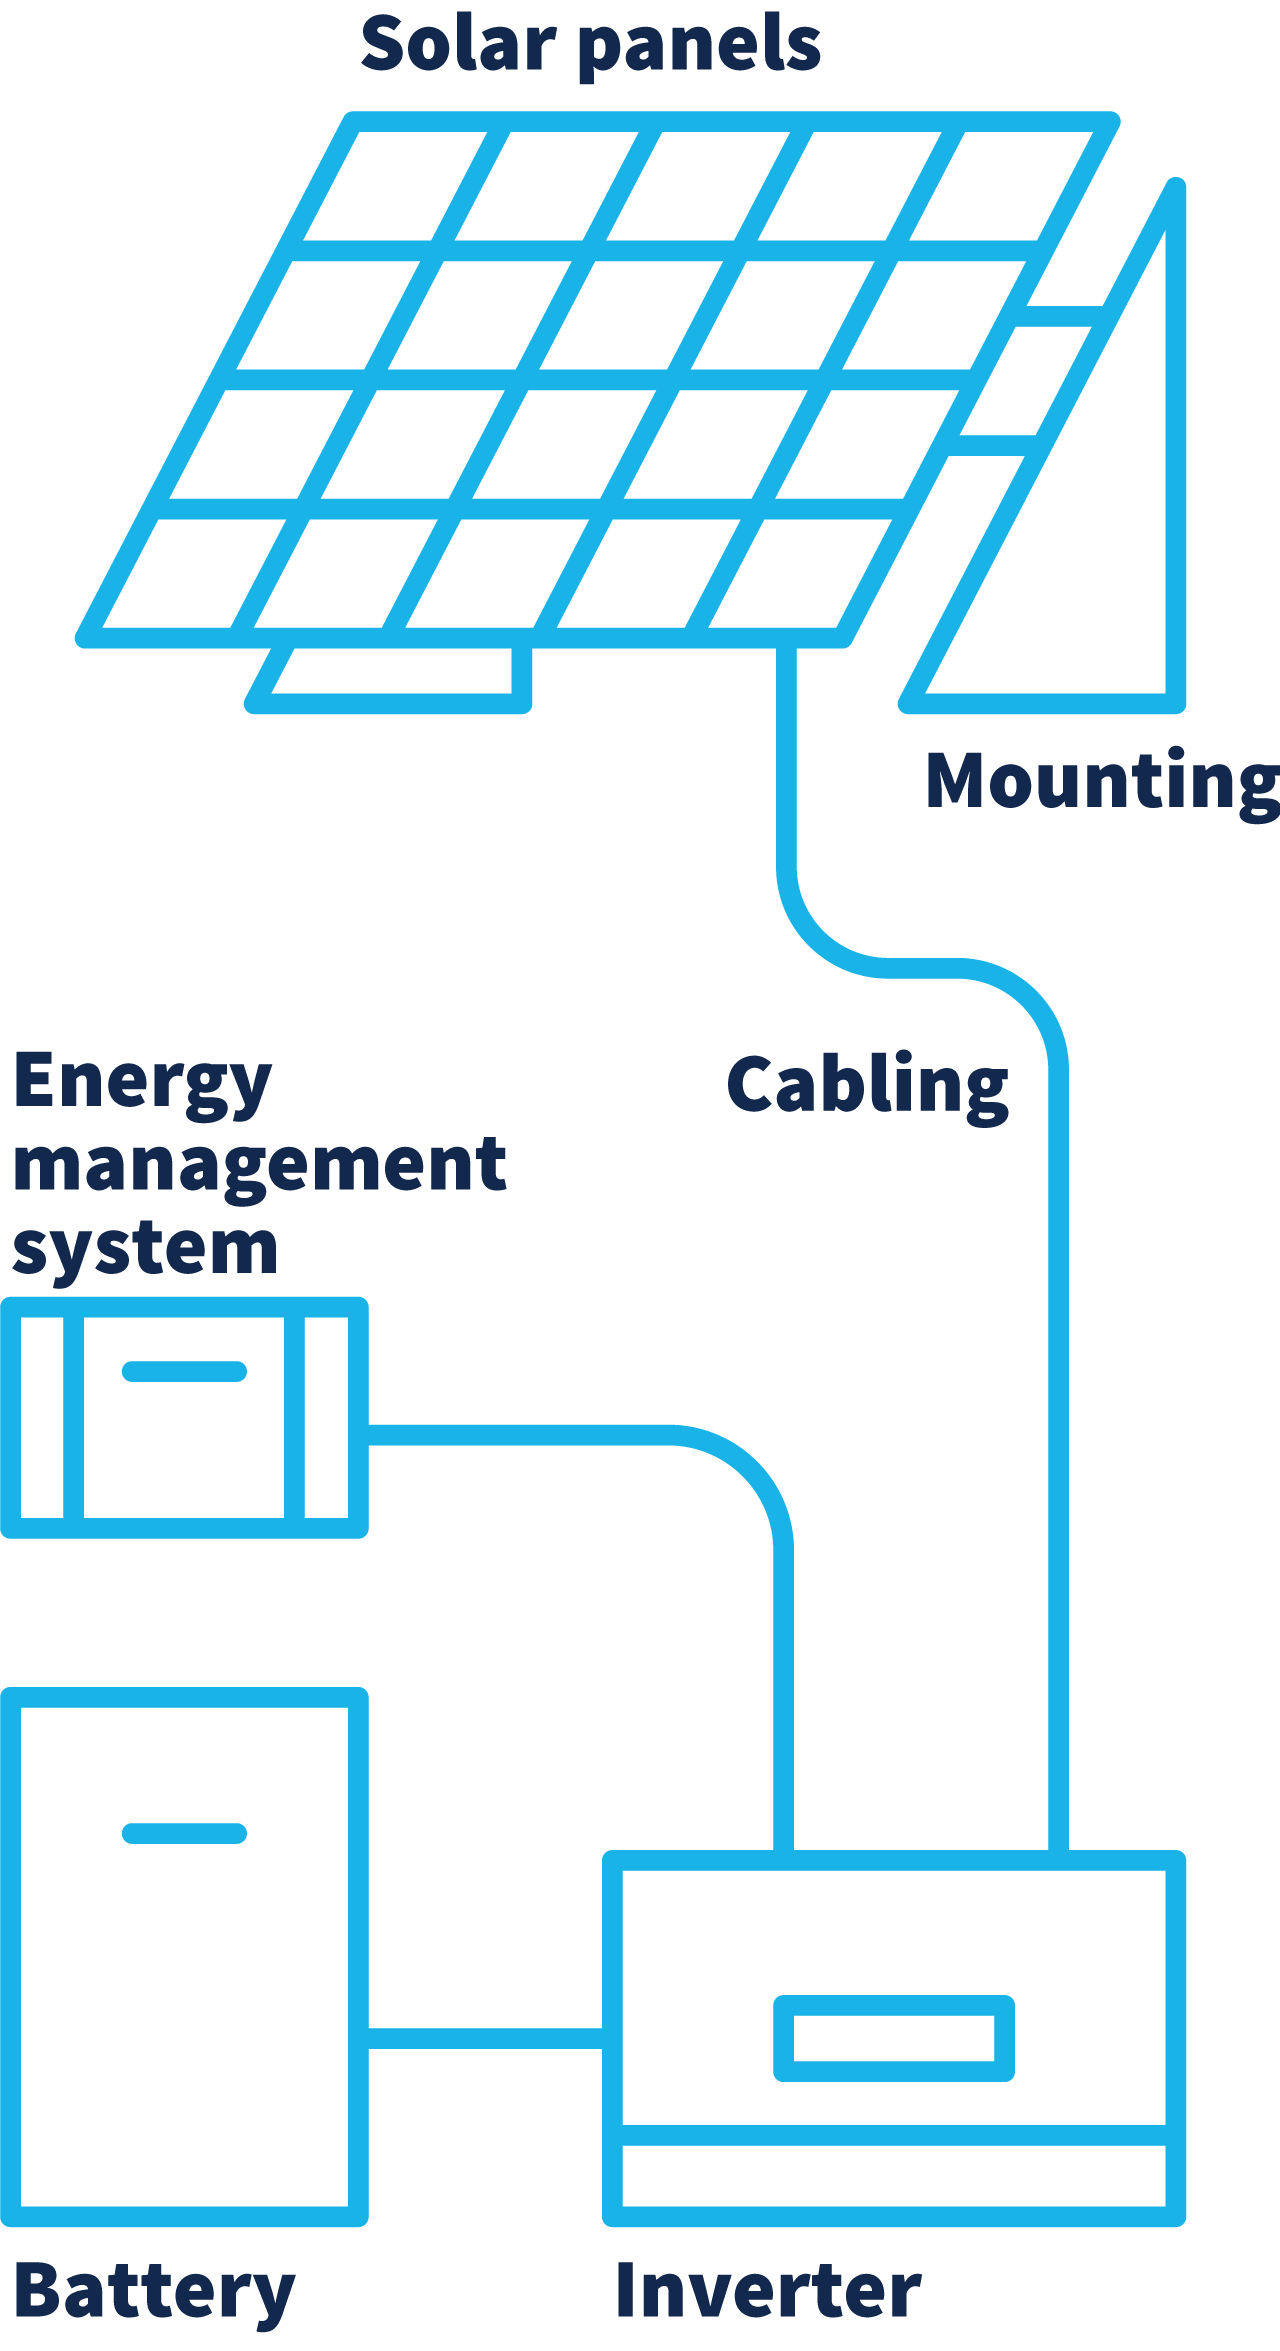 A diagram depicts a solar panel mounted and connected by cabling to an inverter. This inverter splits off to an energy management system and a battery.